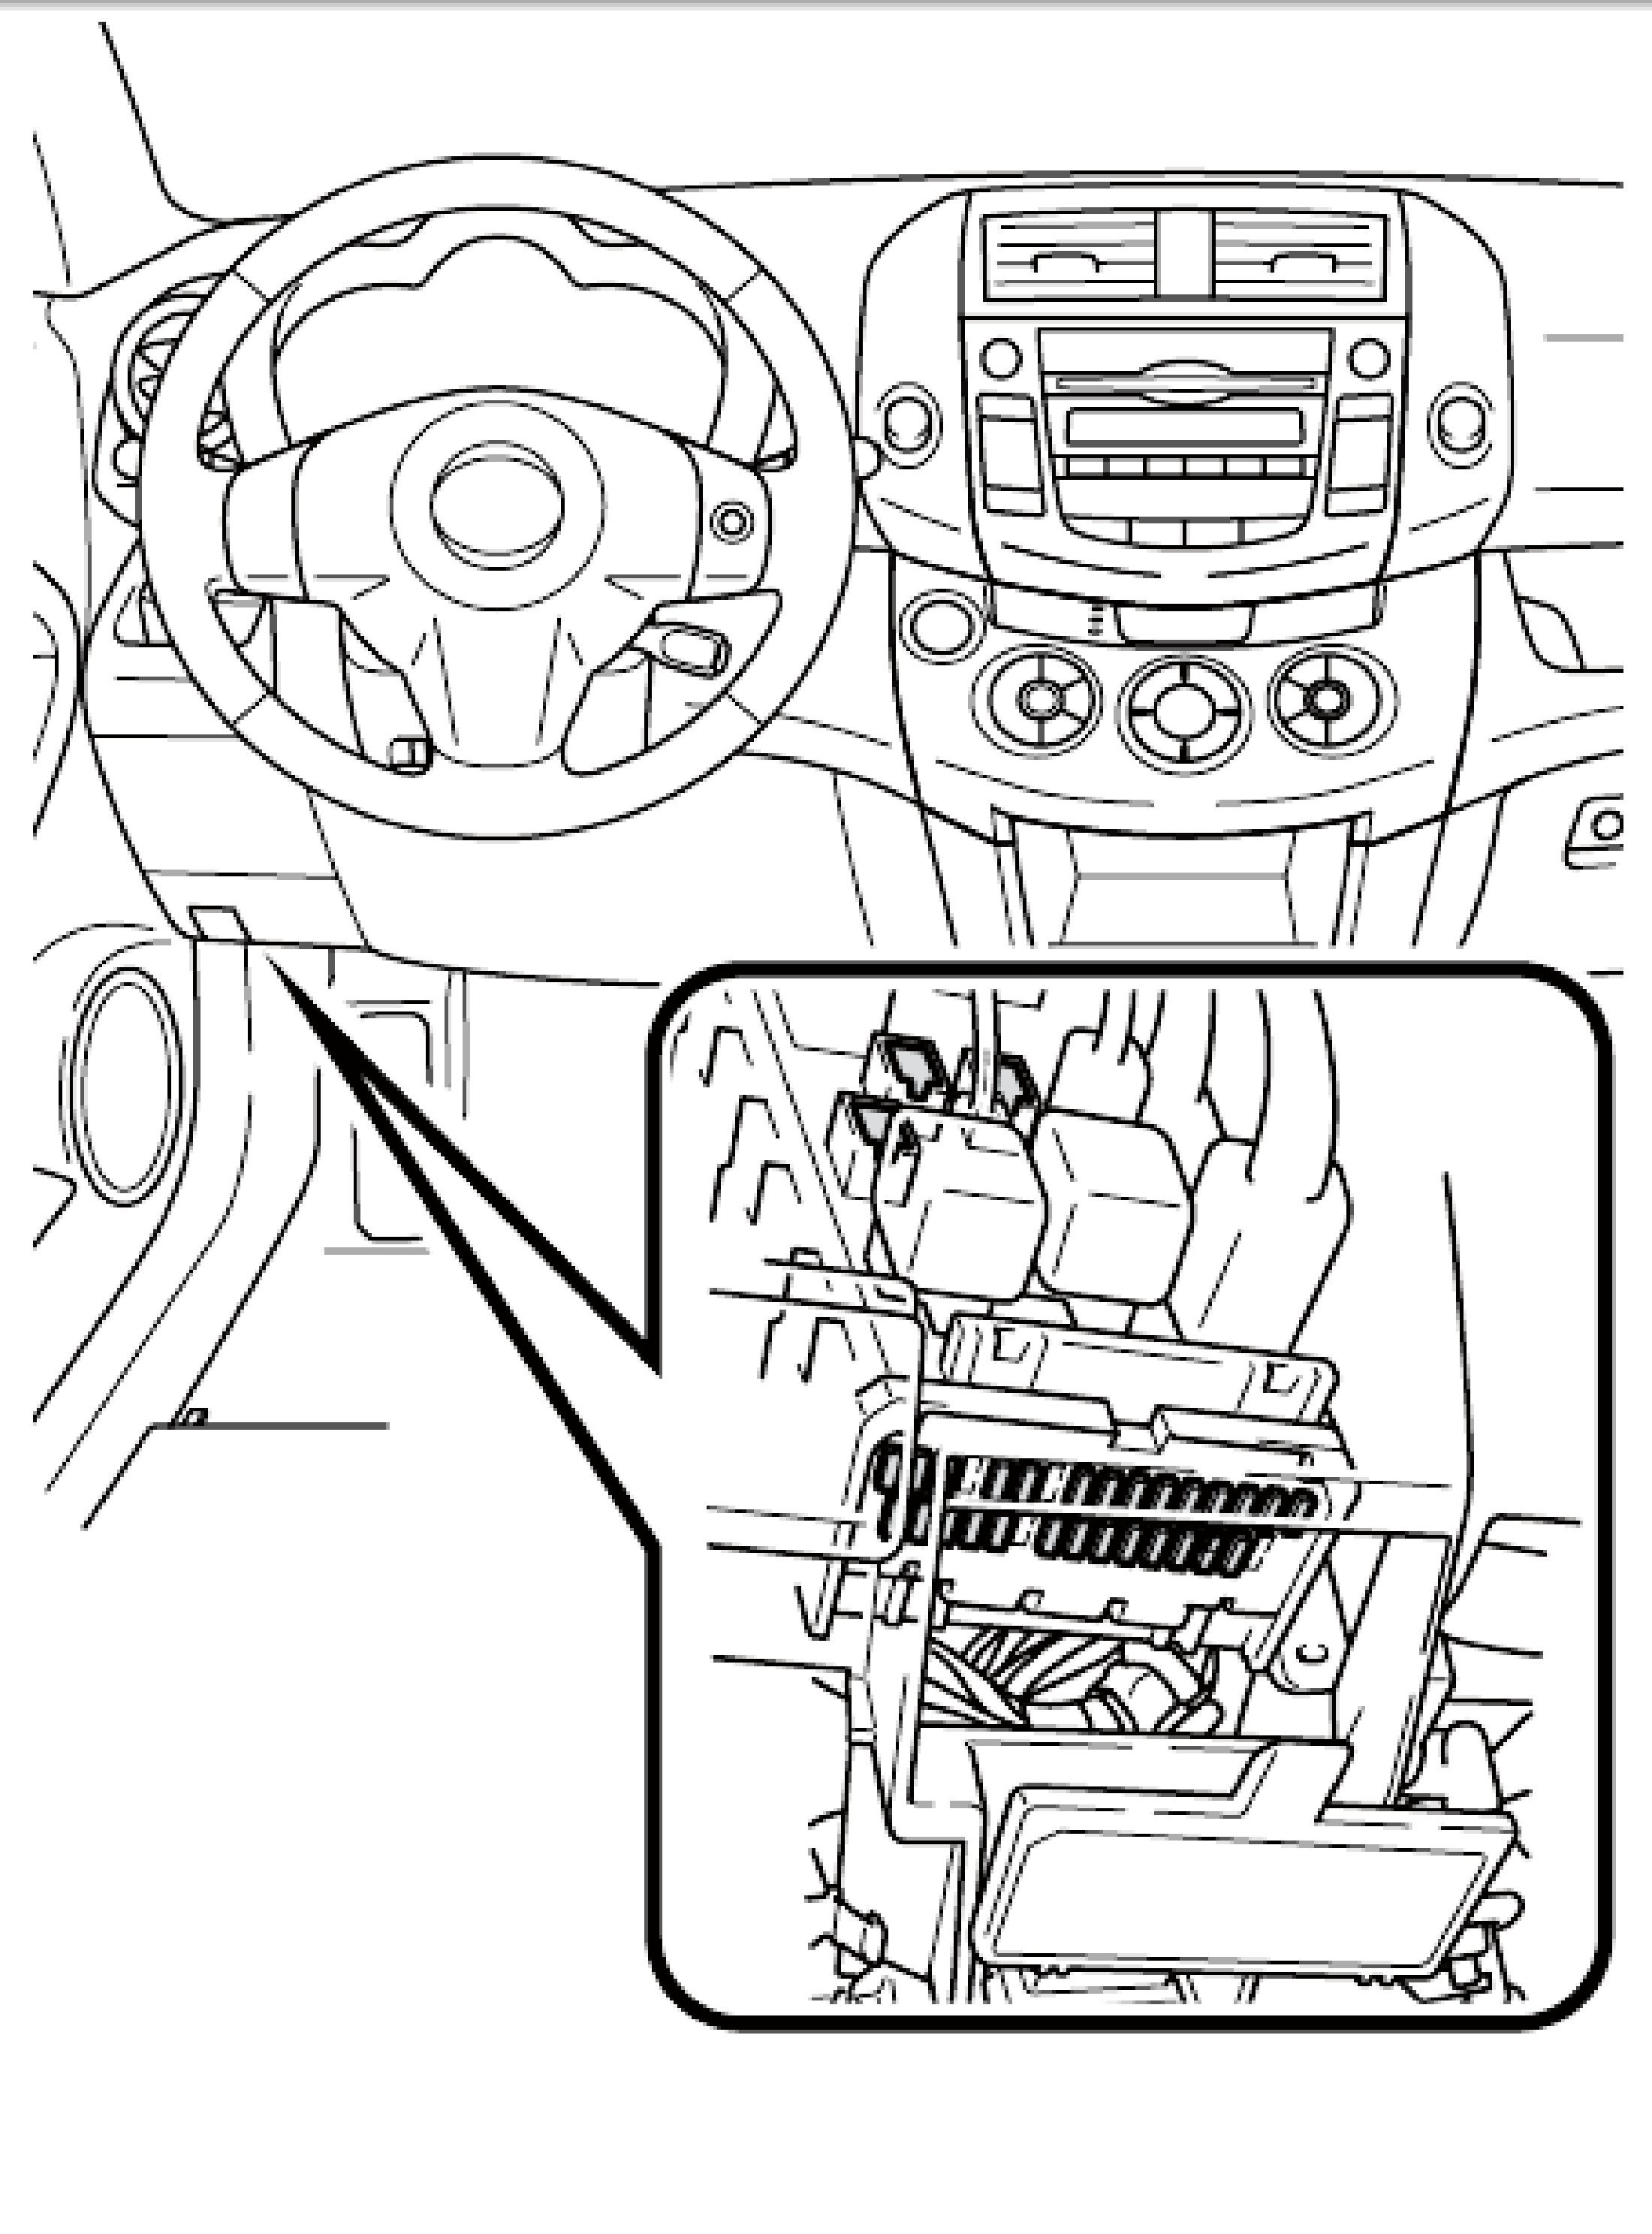 toyota camry wiring diagram